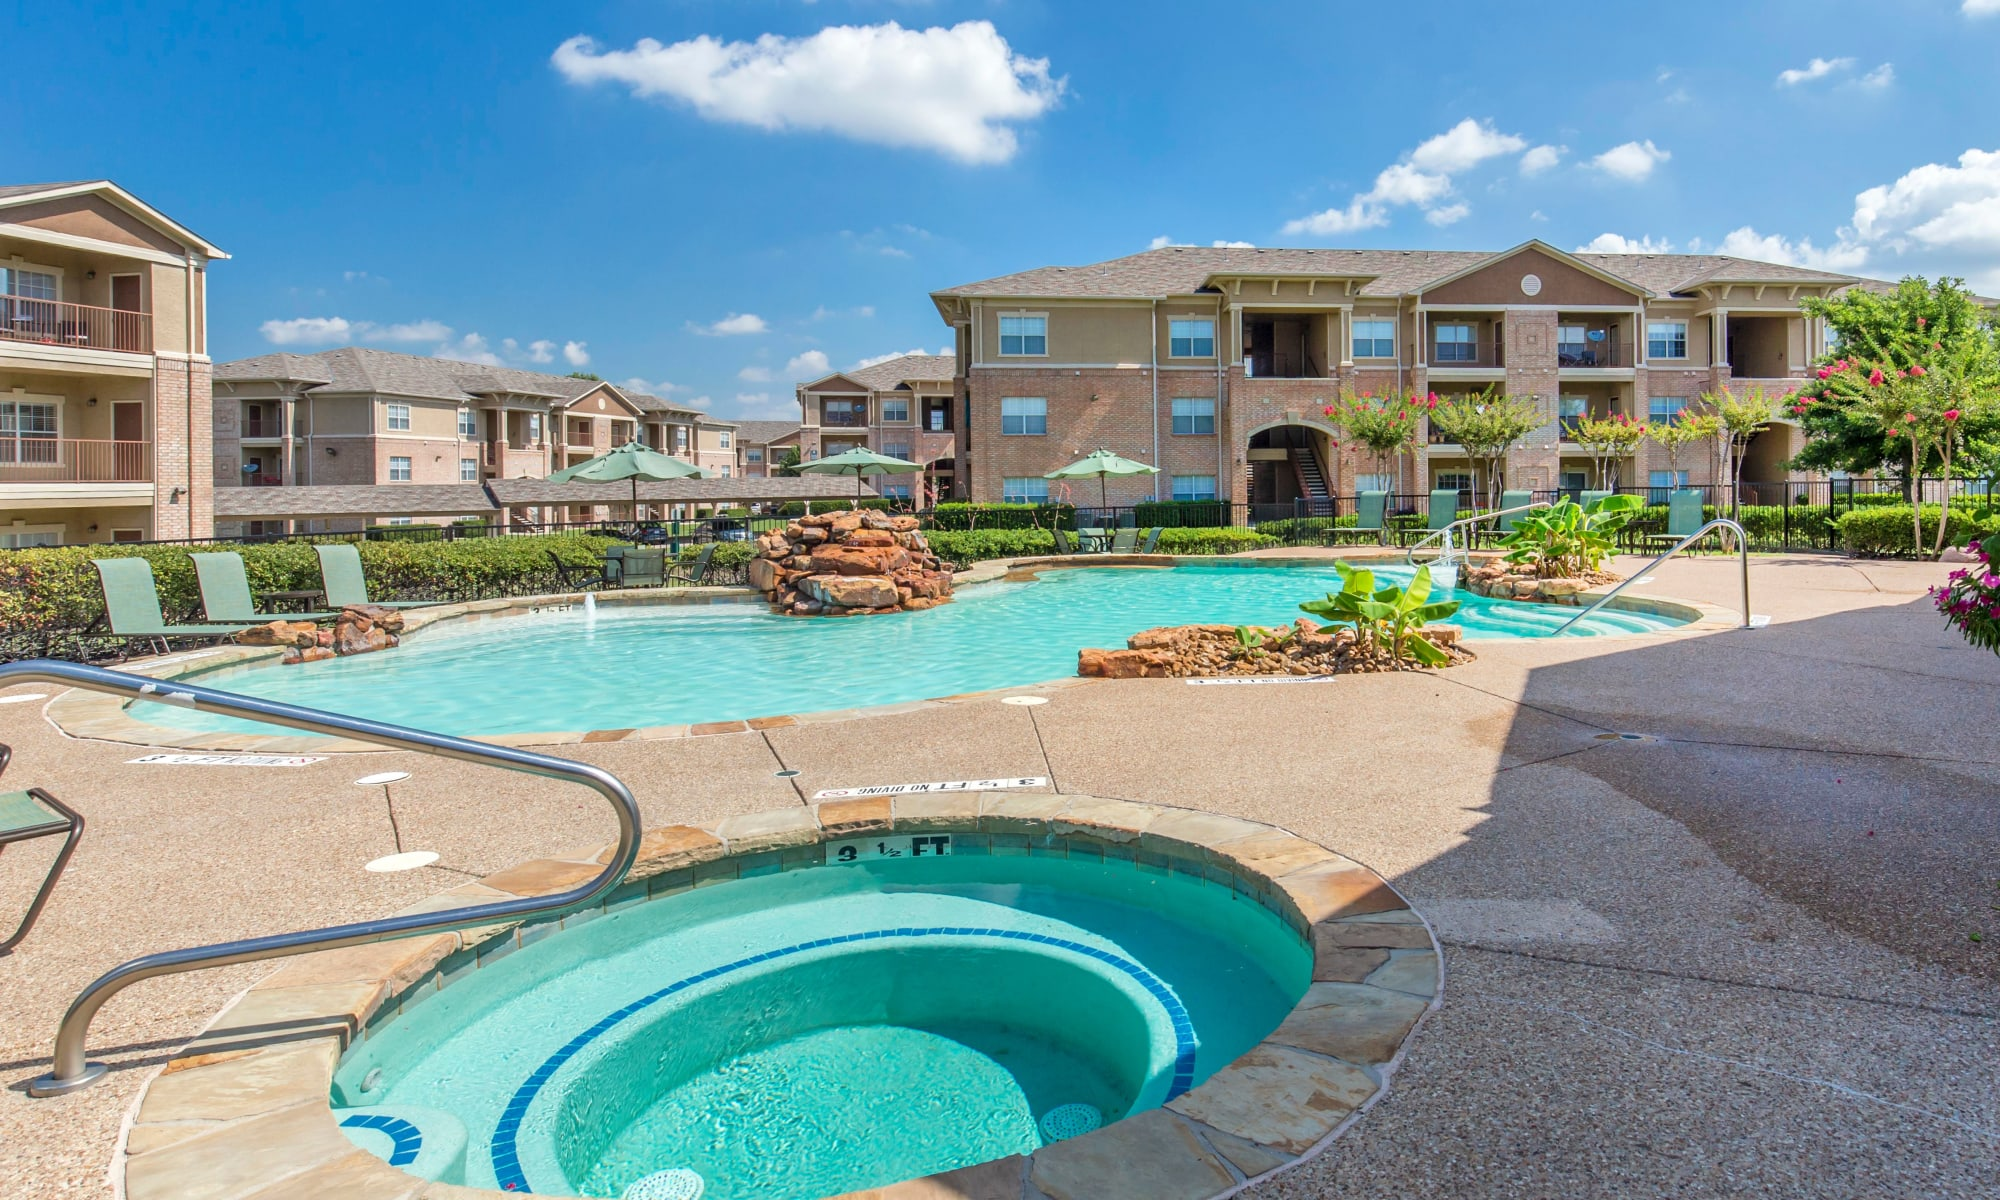 Apartments at Ranch at Hudson Xing in McKinney, Texas